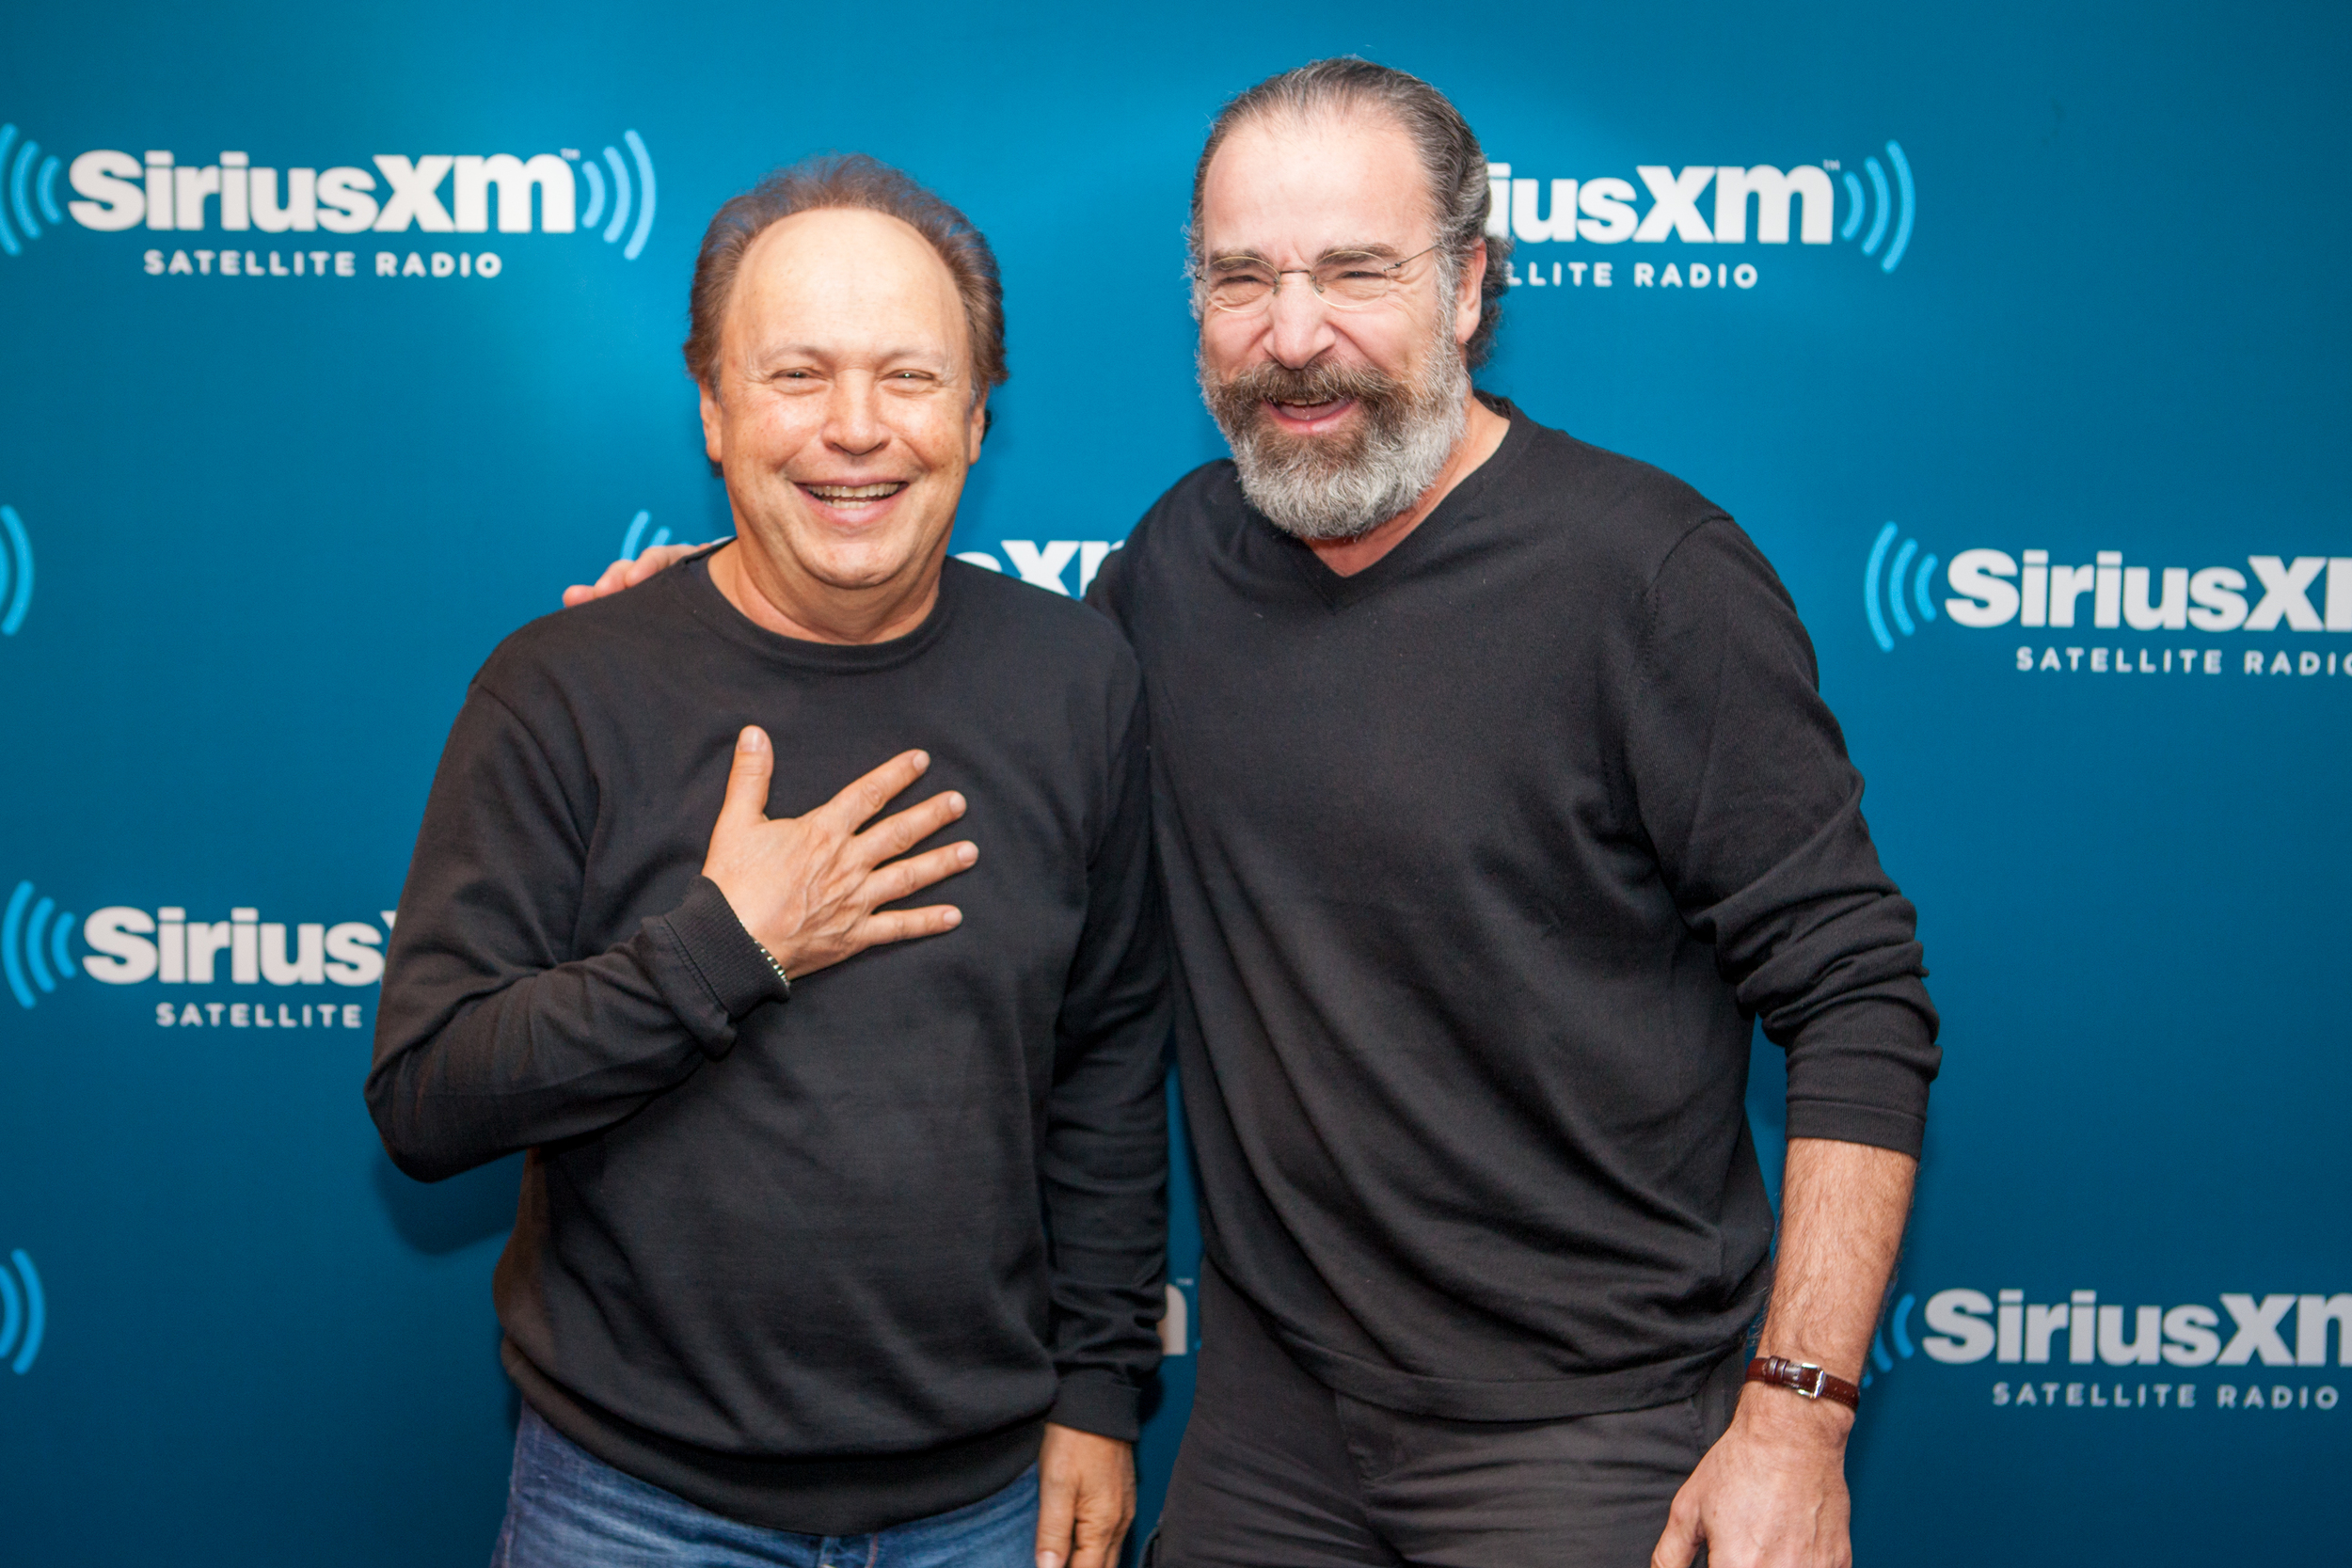 Billy Crystal and Mandy Patinkin